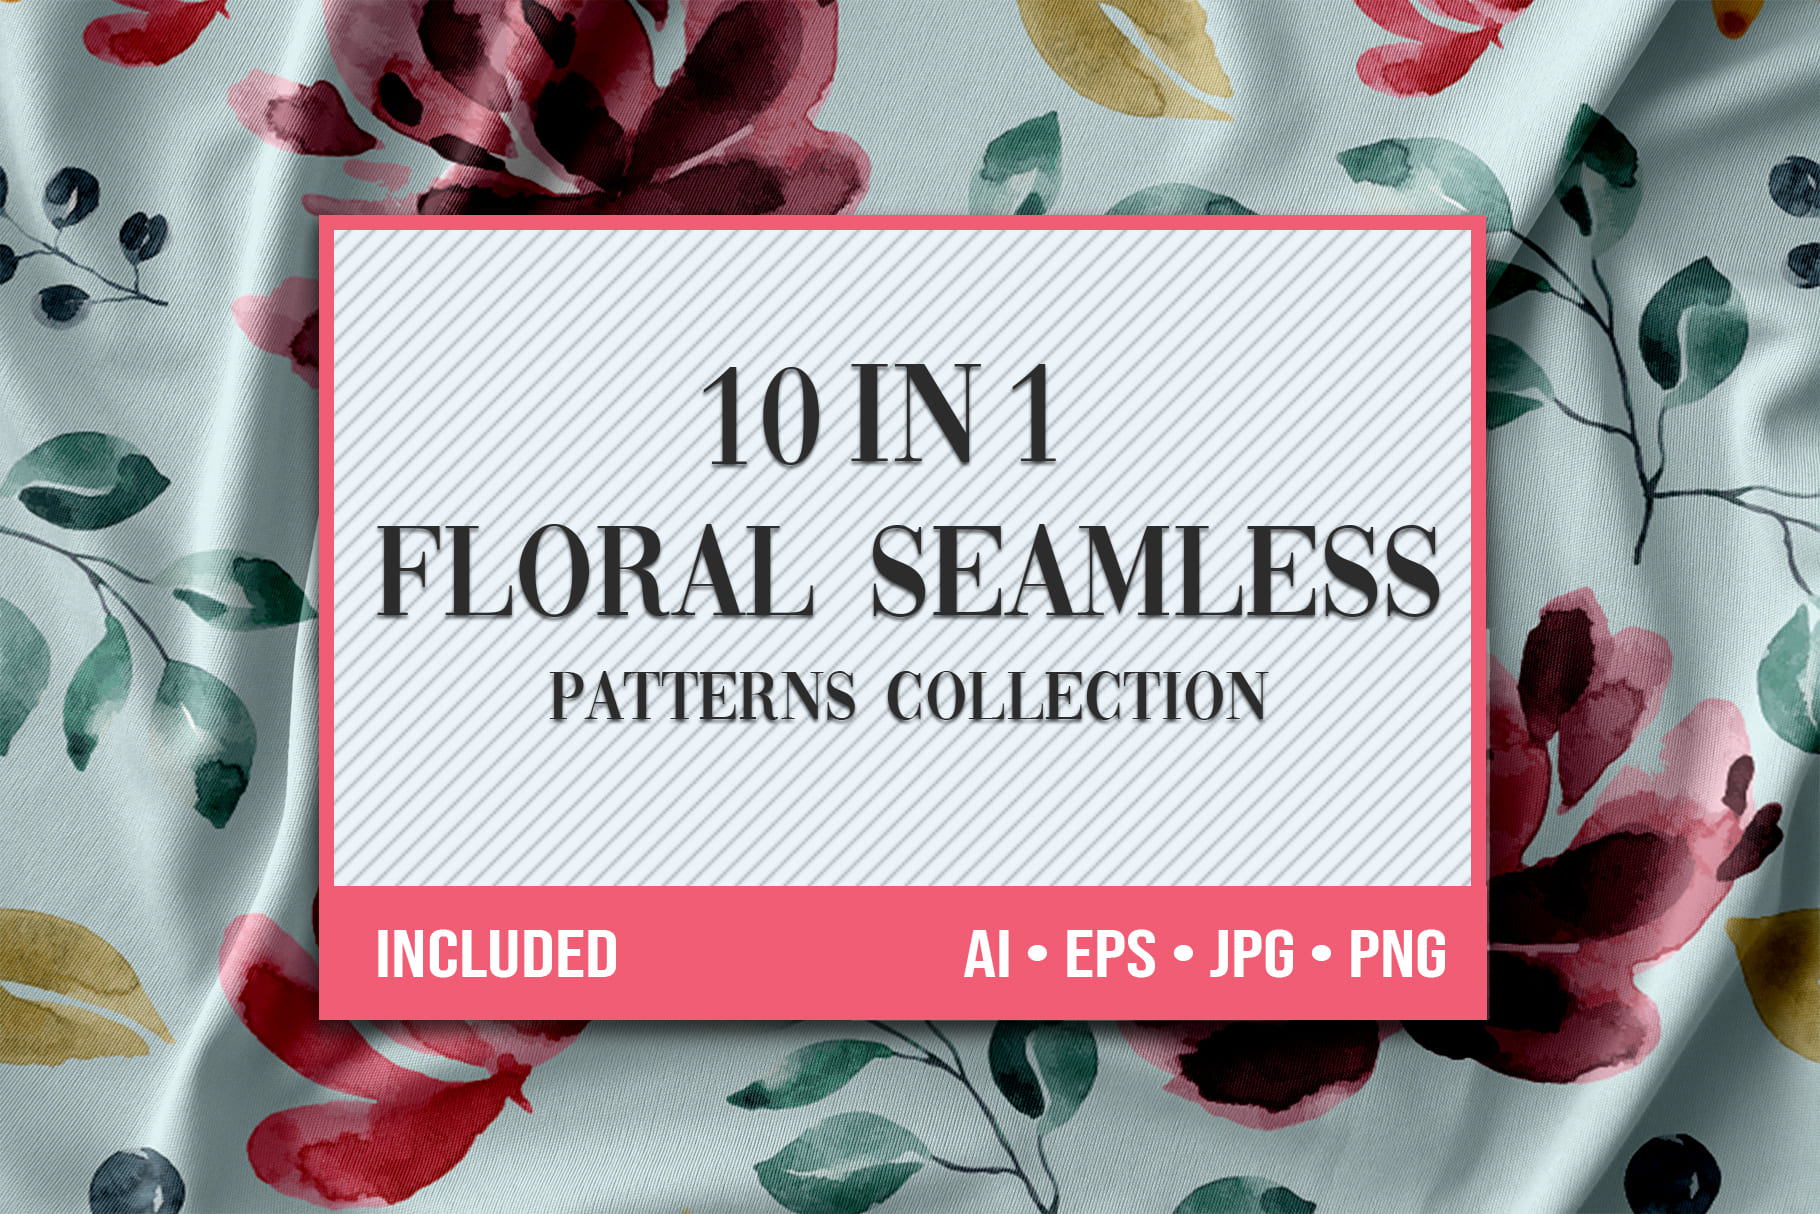 Main image.Floral Seamless Patterns Collection.